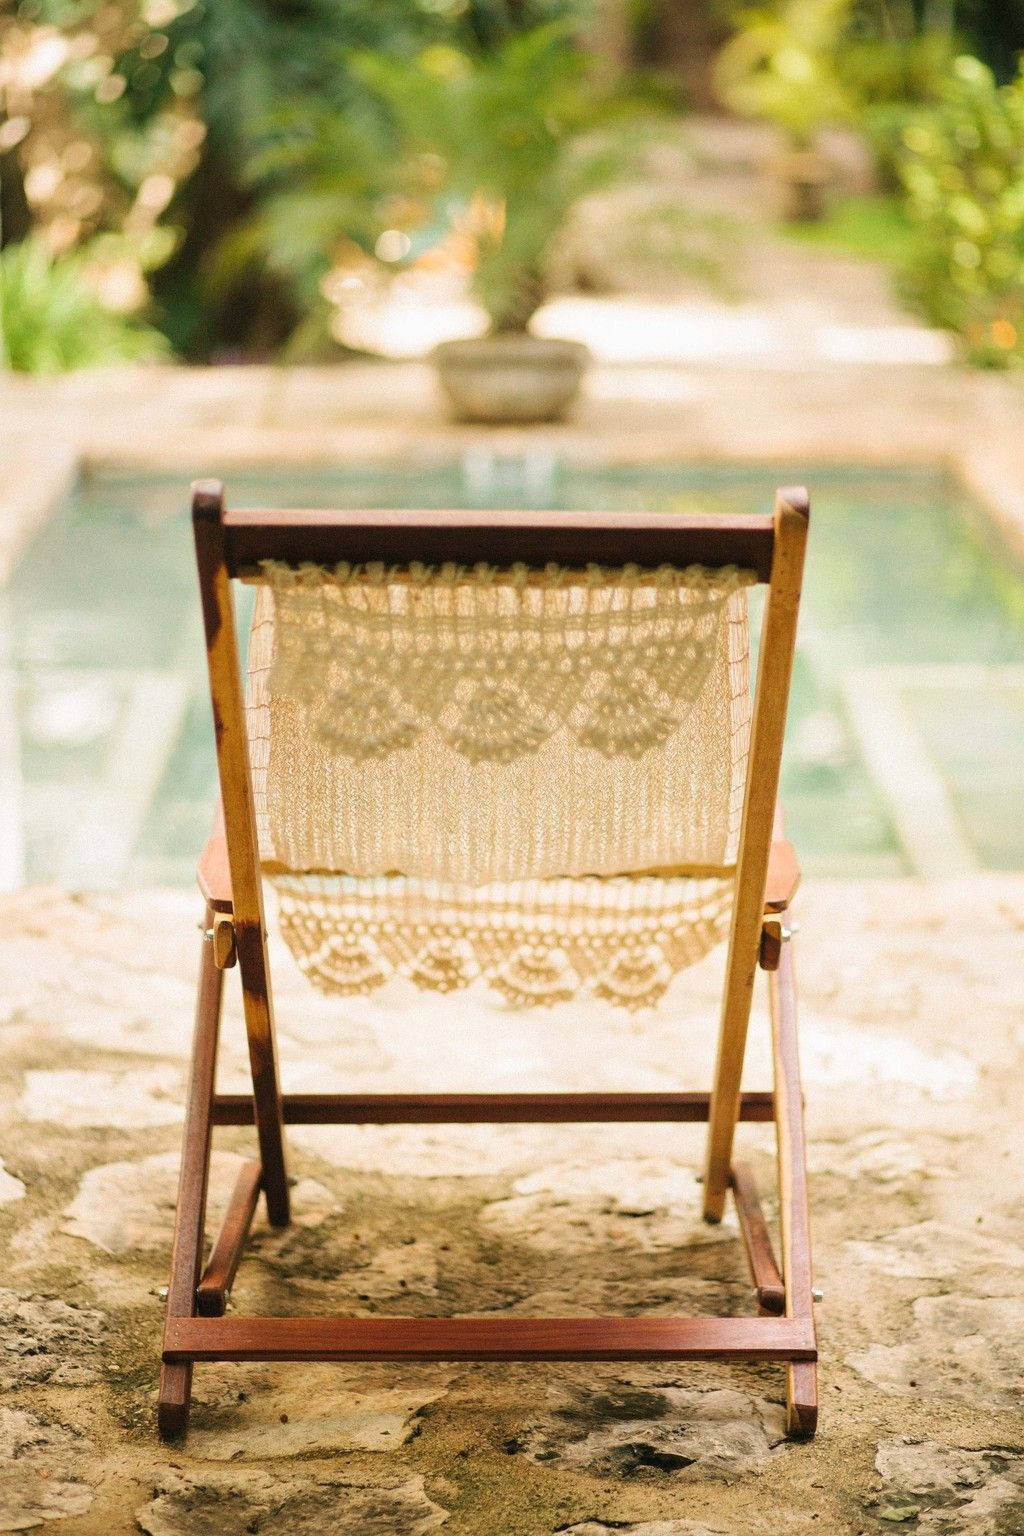 Maison Decor Valladolid Deckchair Crochet On Wood Spa Coqui Coqui Valladolid